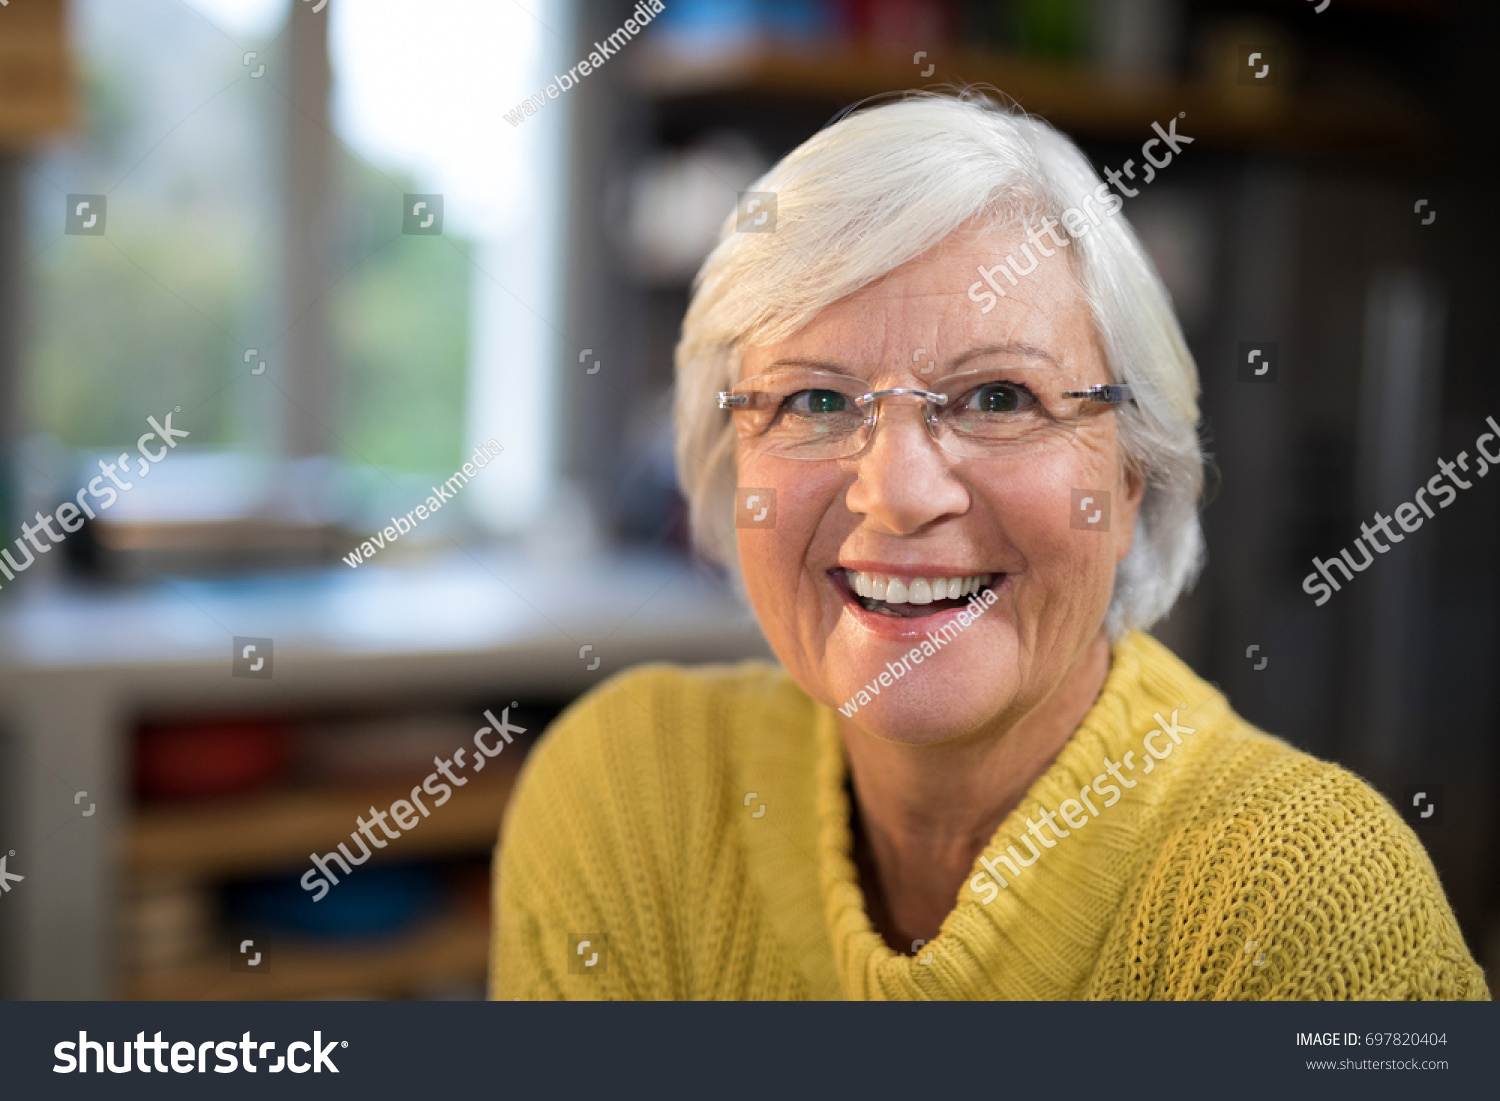 Portrait of laughing senior woman in the kitchen #697820404